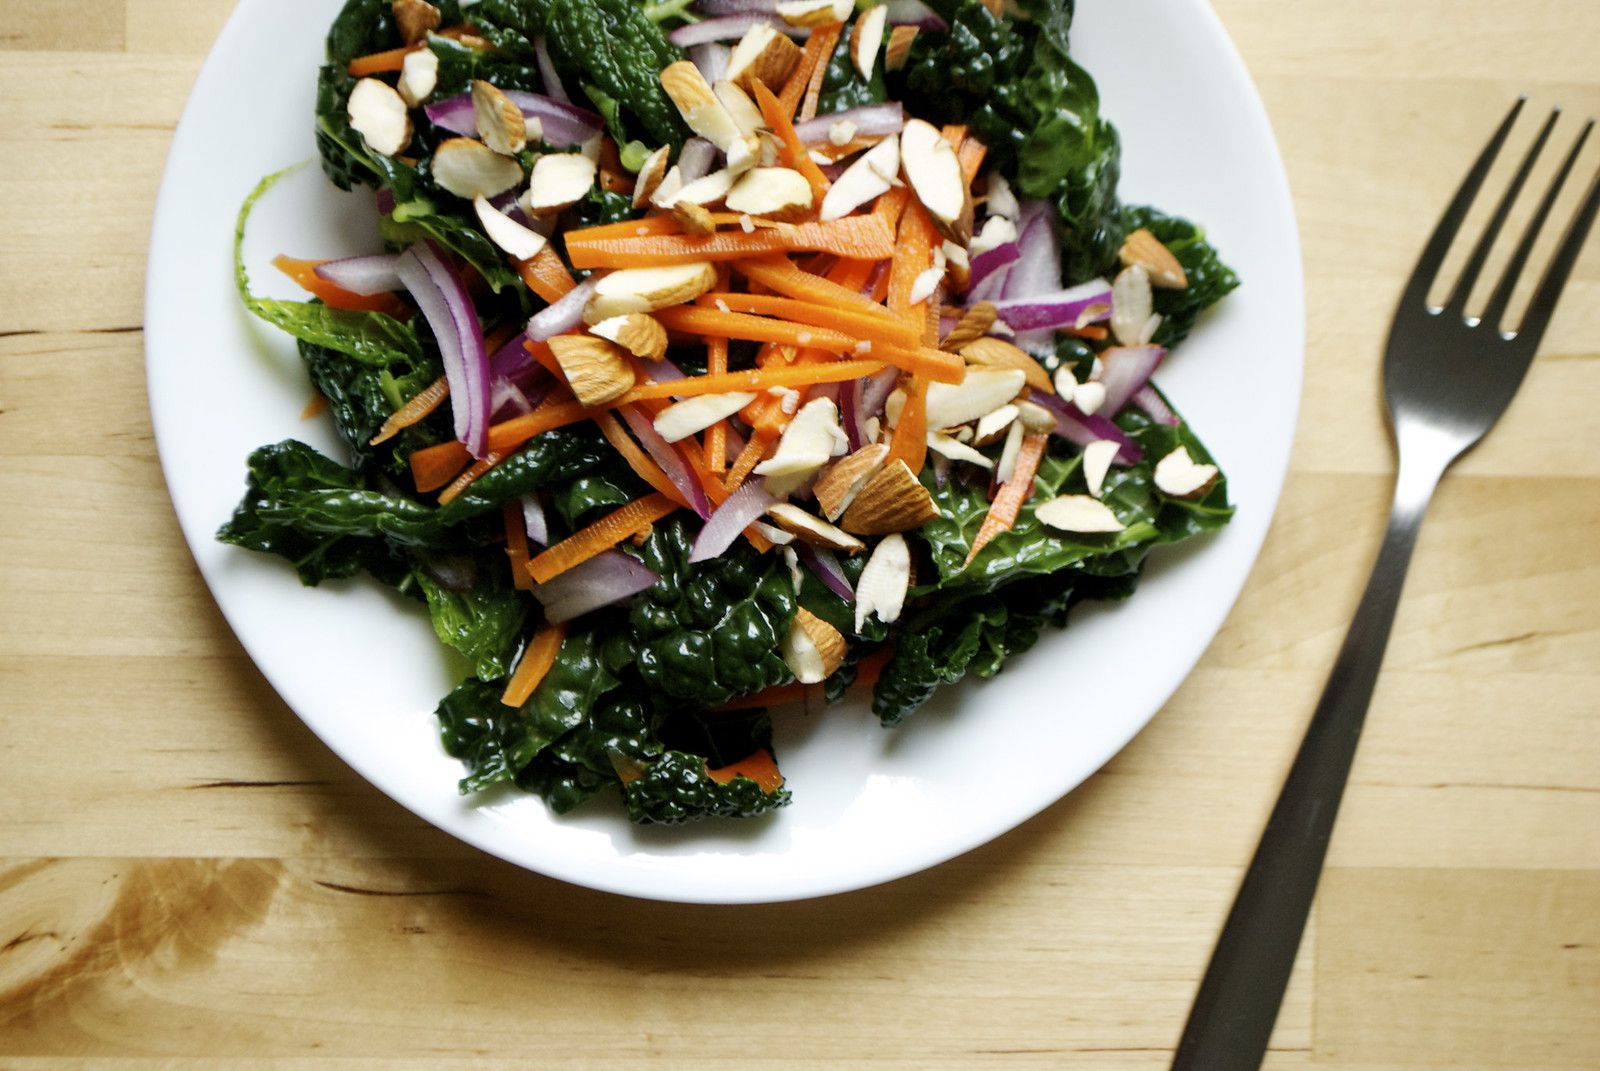 Kale Carrot Salad with Orange Vinaigrette | Kitchen in the Hills